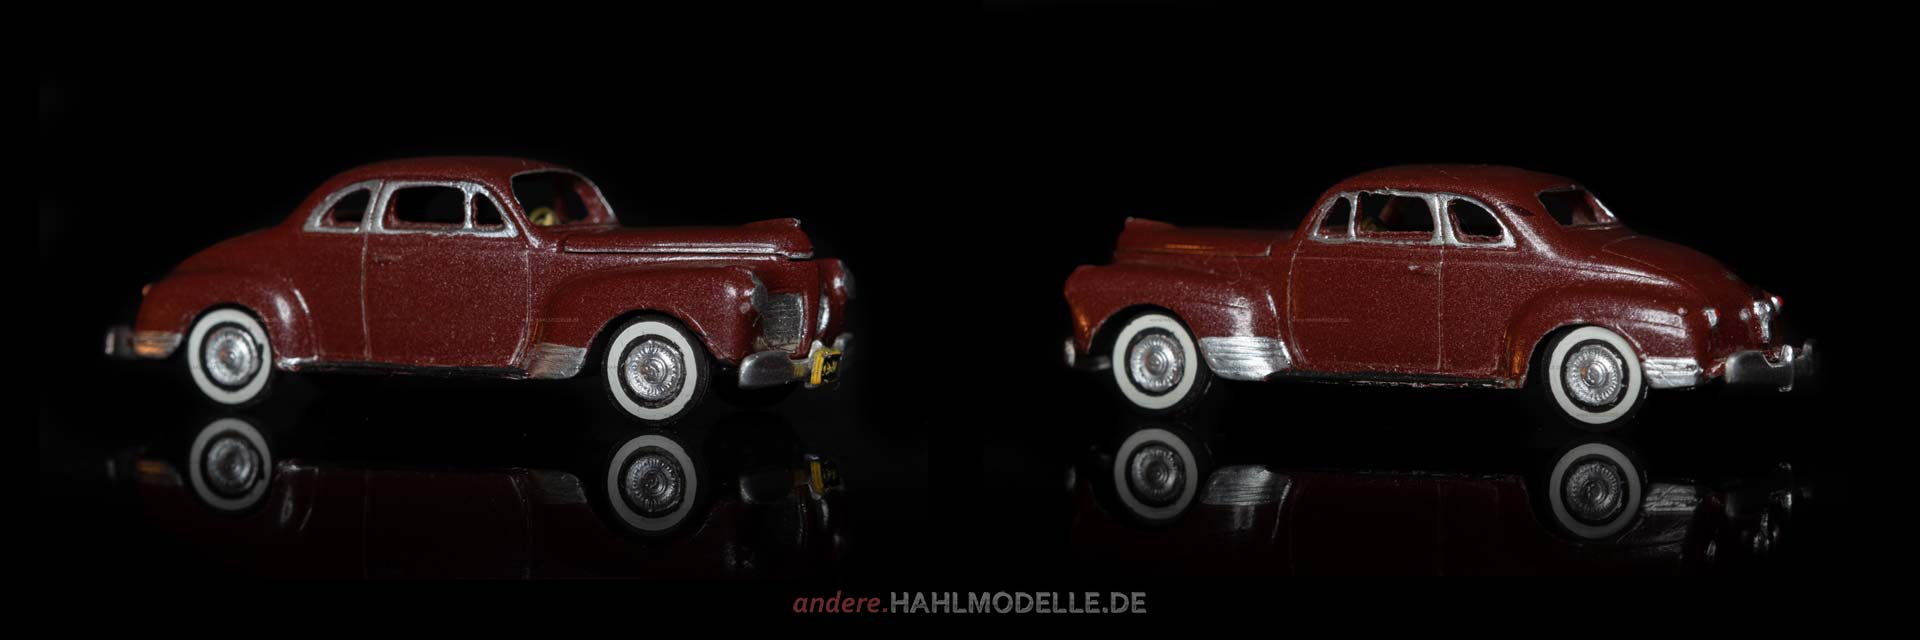 Plymouth Special Deluxe Coupé (P 12) | Coupé | Alloy Forms Inc. | 1:87 | www.andere.hahlmodelle.de